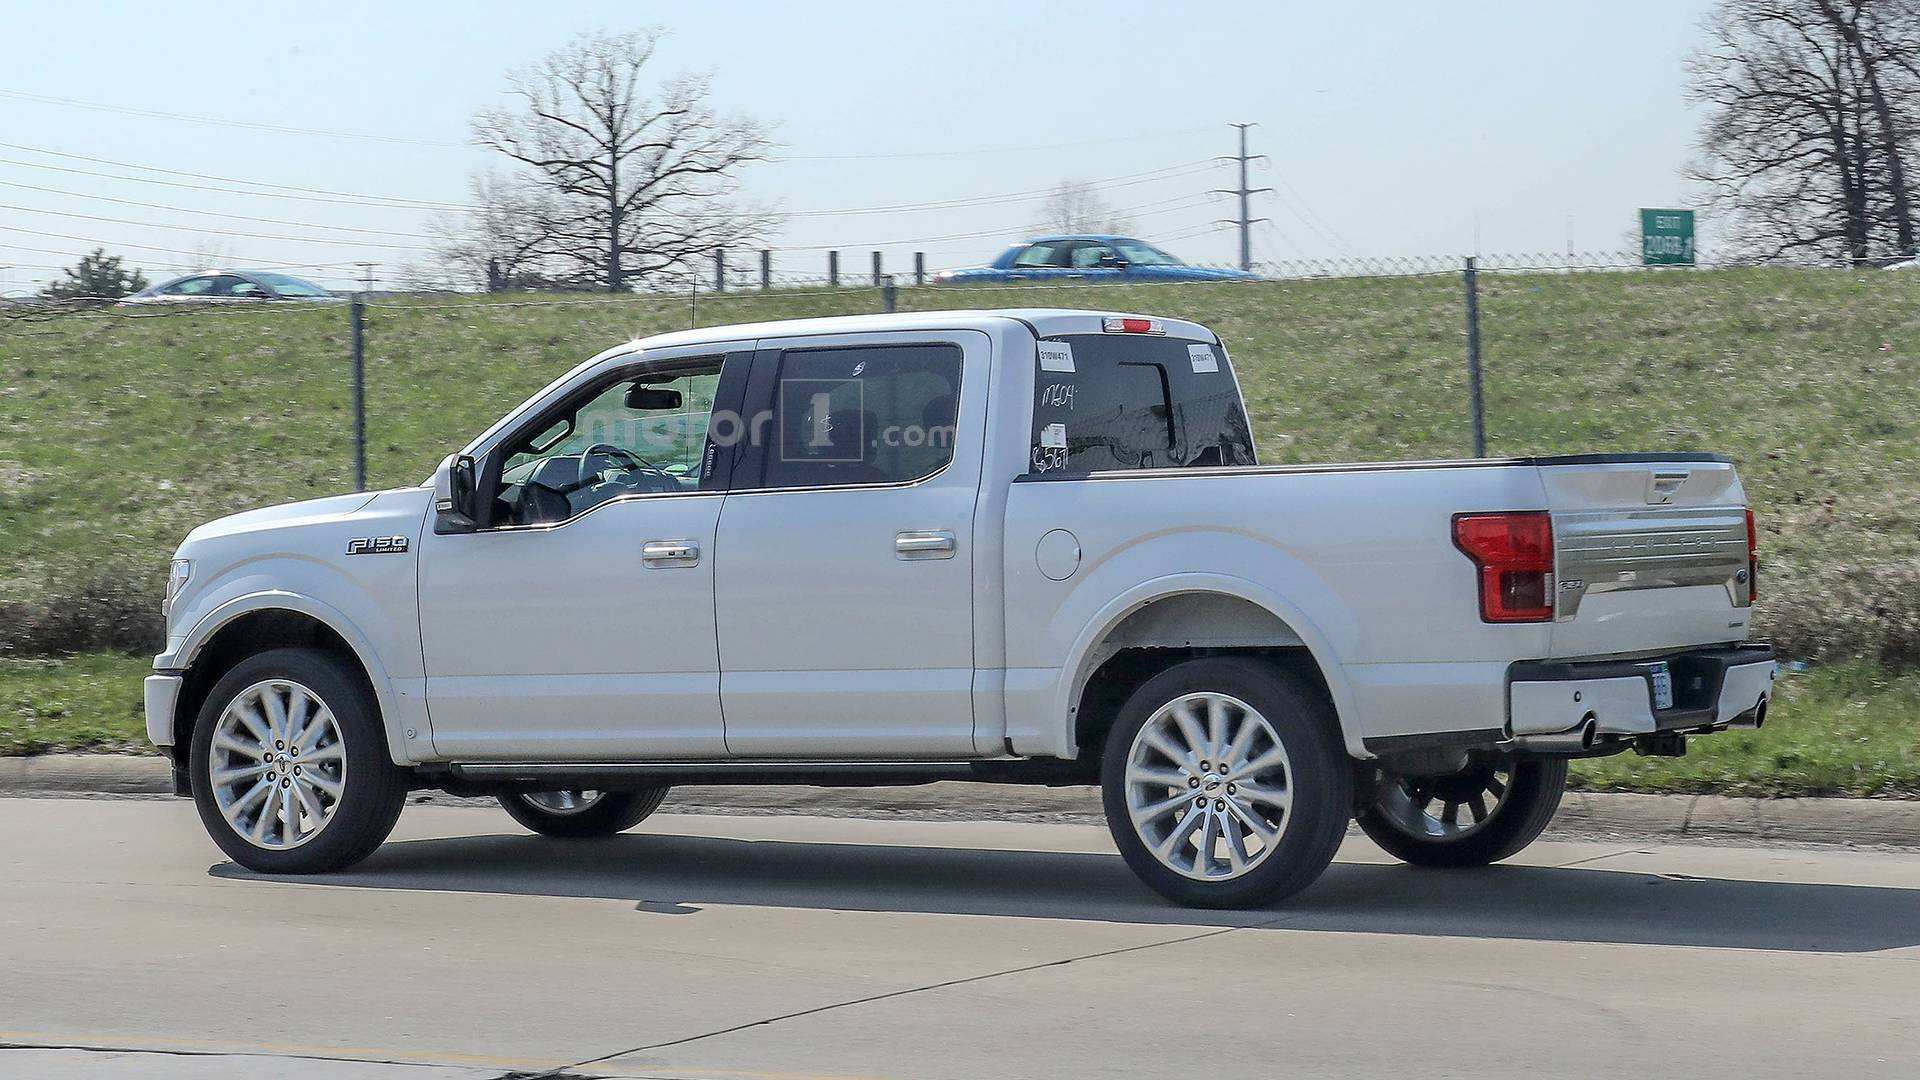 99 The 2019 Ford 150 Truck Price with 2019 Ford 150 Truck